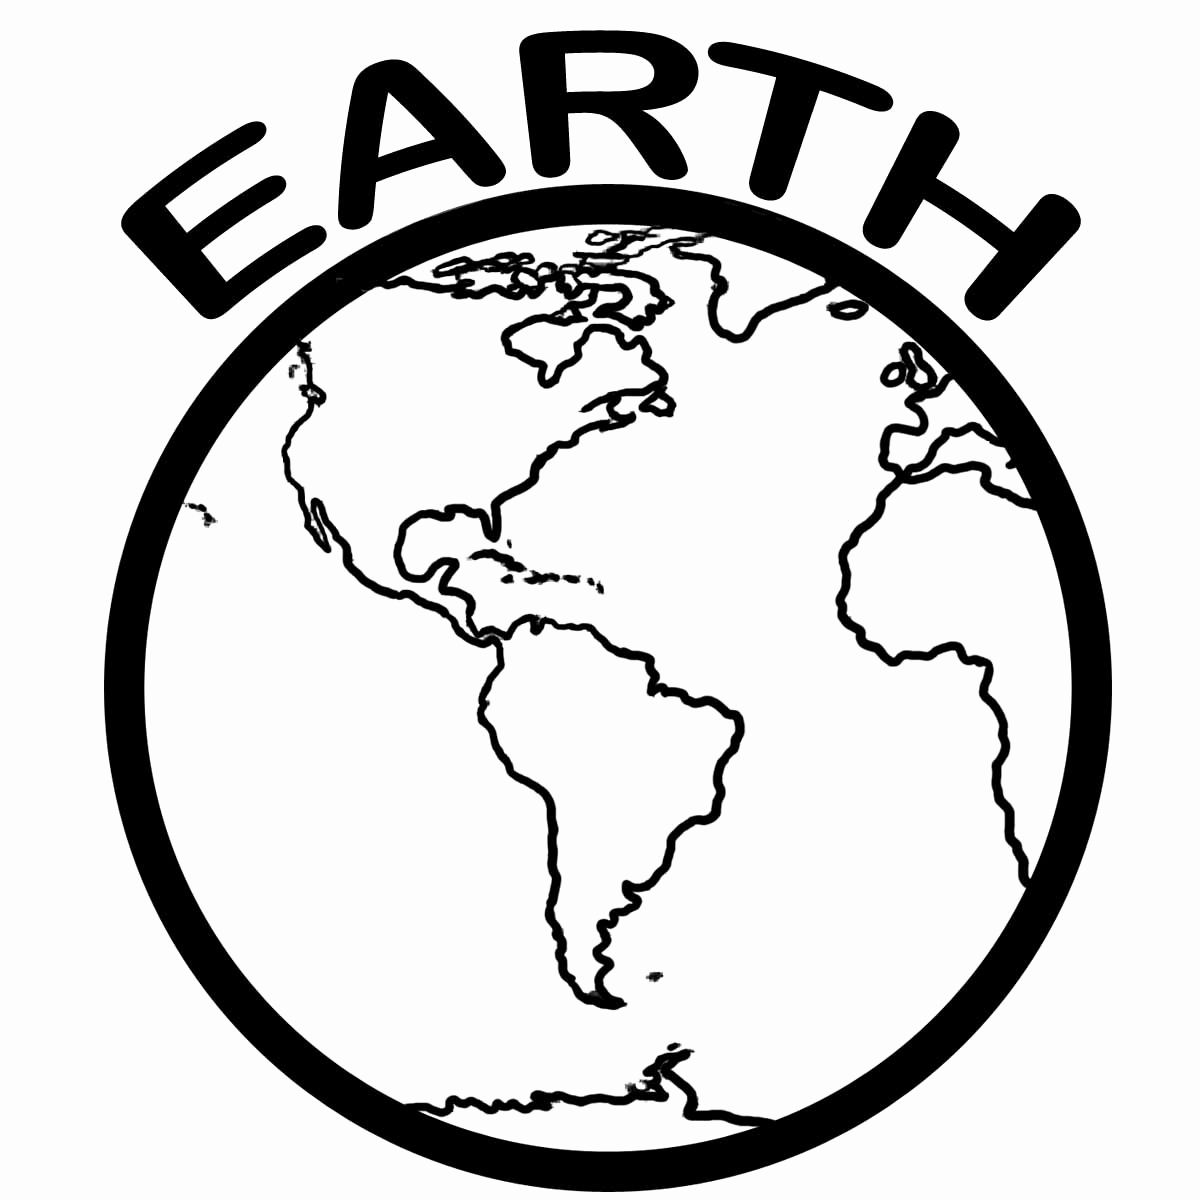 Earth Science Coloring Pages Elegant Clip Art Be Kind To